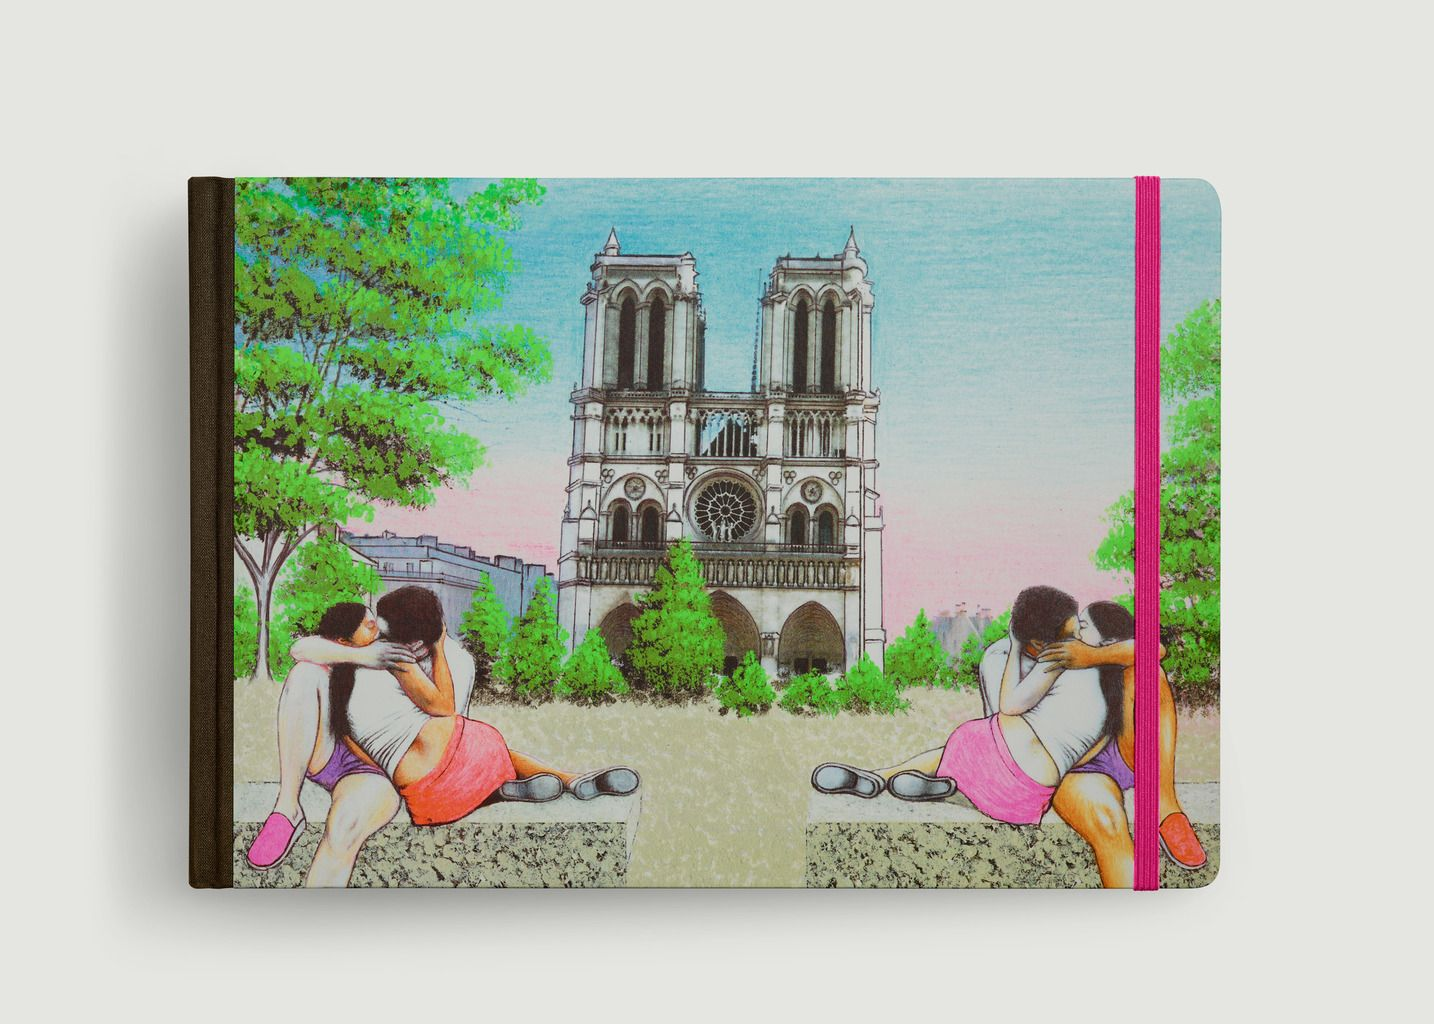 Livre Travel Book Paris - Louis Vuitton Travel Book